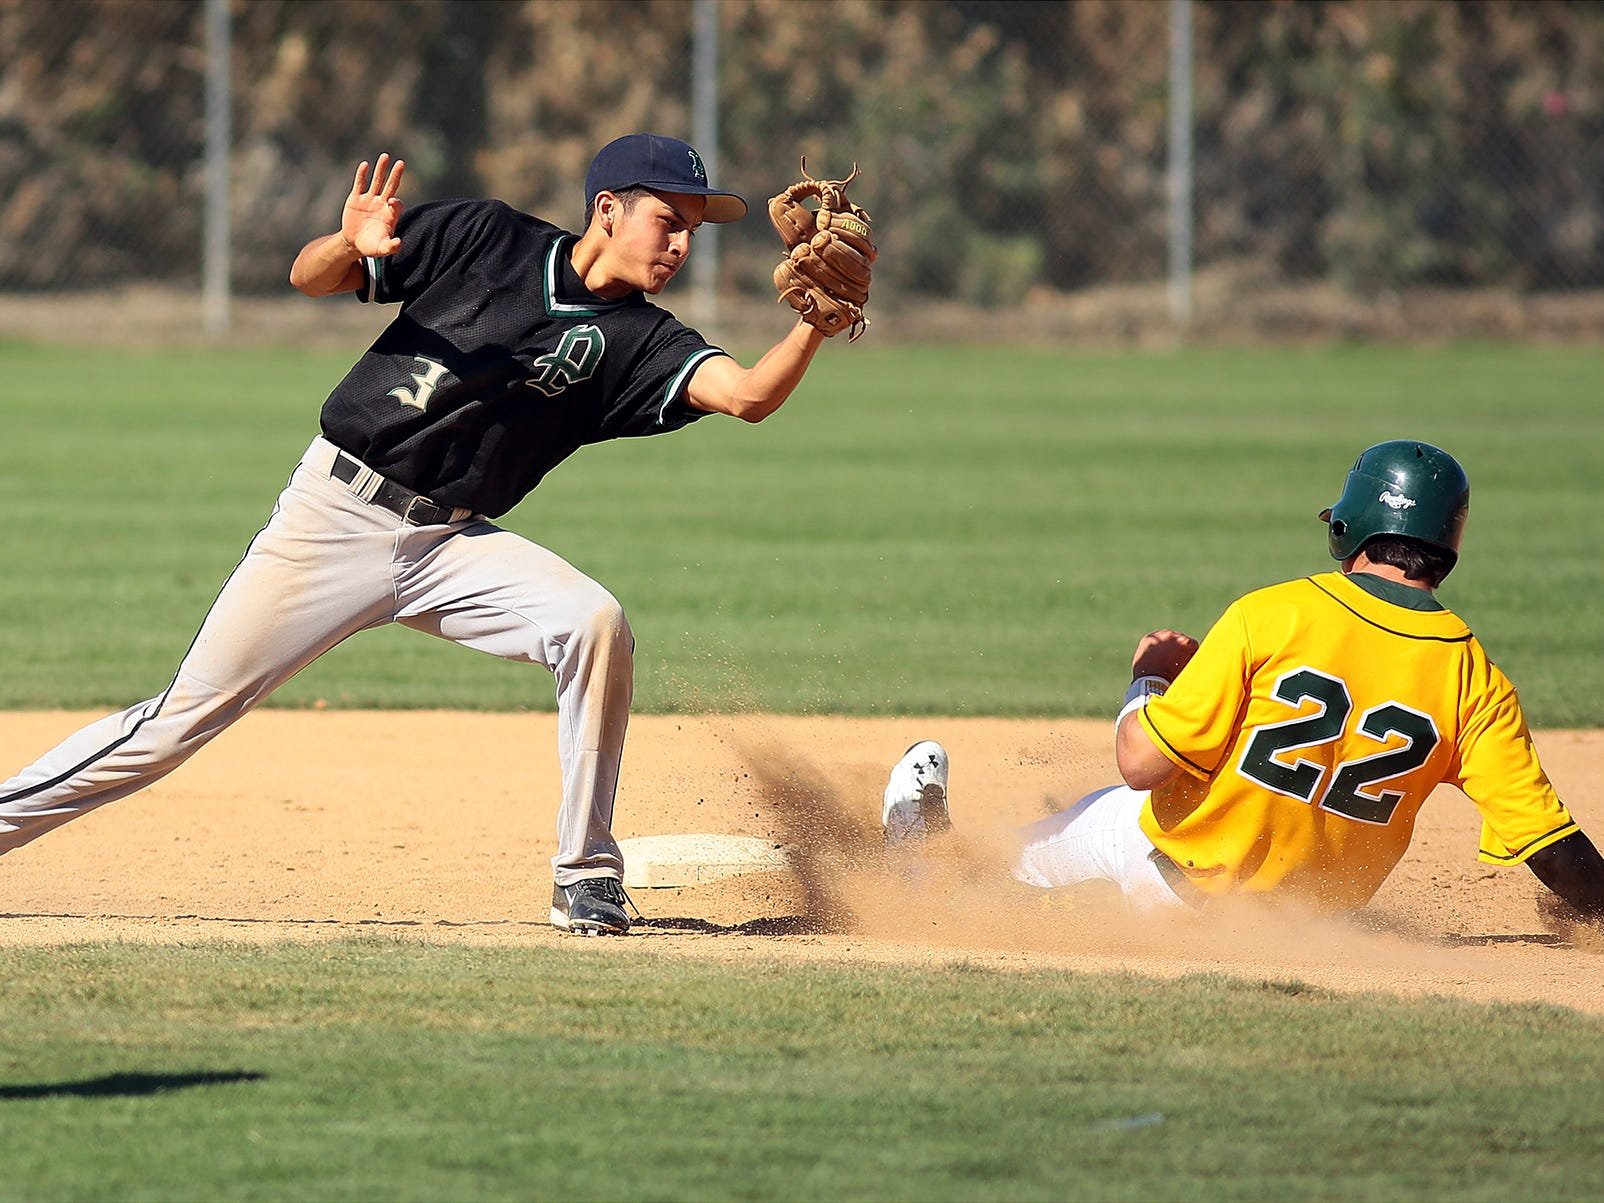 Perris High School's Jorge Medina (3, left) reaches down to try to tag Notre Dame's Danny Baytosh (22, right) out at second base on Monday afternoon, March 30, 2015 during a game at Coachella Valley High School in Thermal, Calif. The schools are playing this week in the annual Coachella Valley Rotary baseball tournament. Baytosh was safe, but was left on base at the end of the inning.